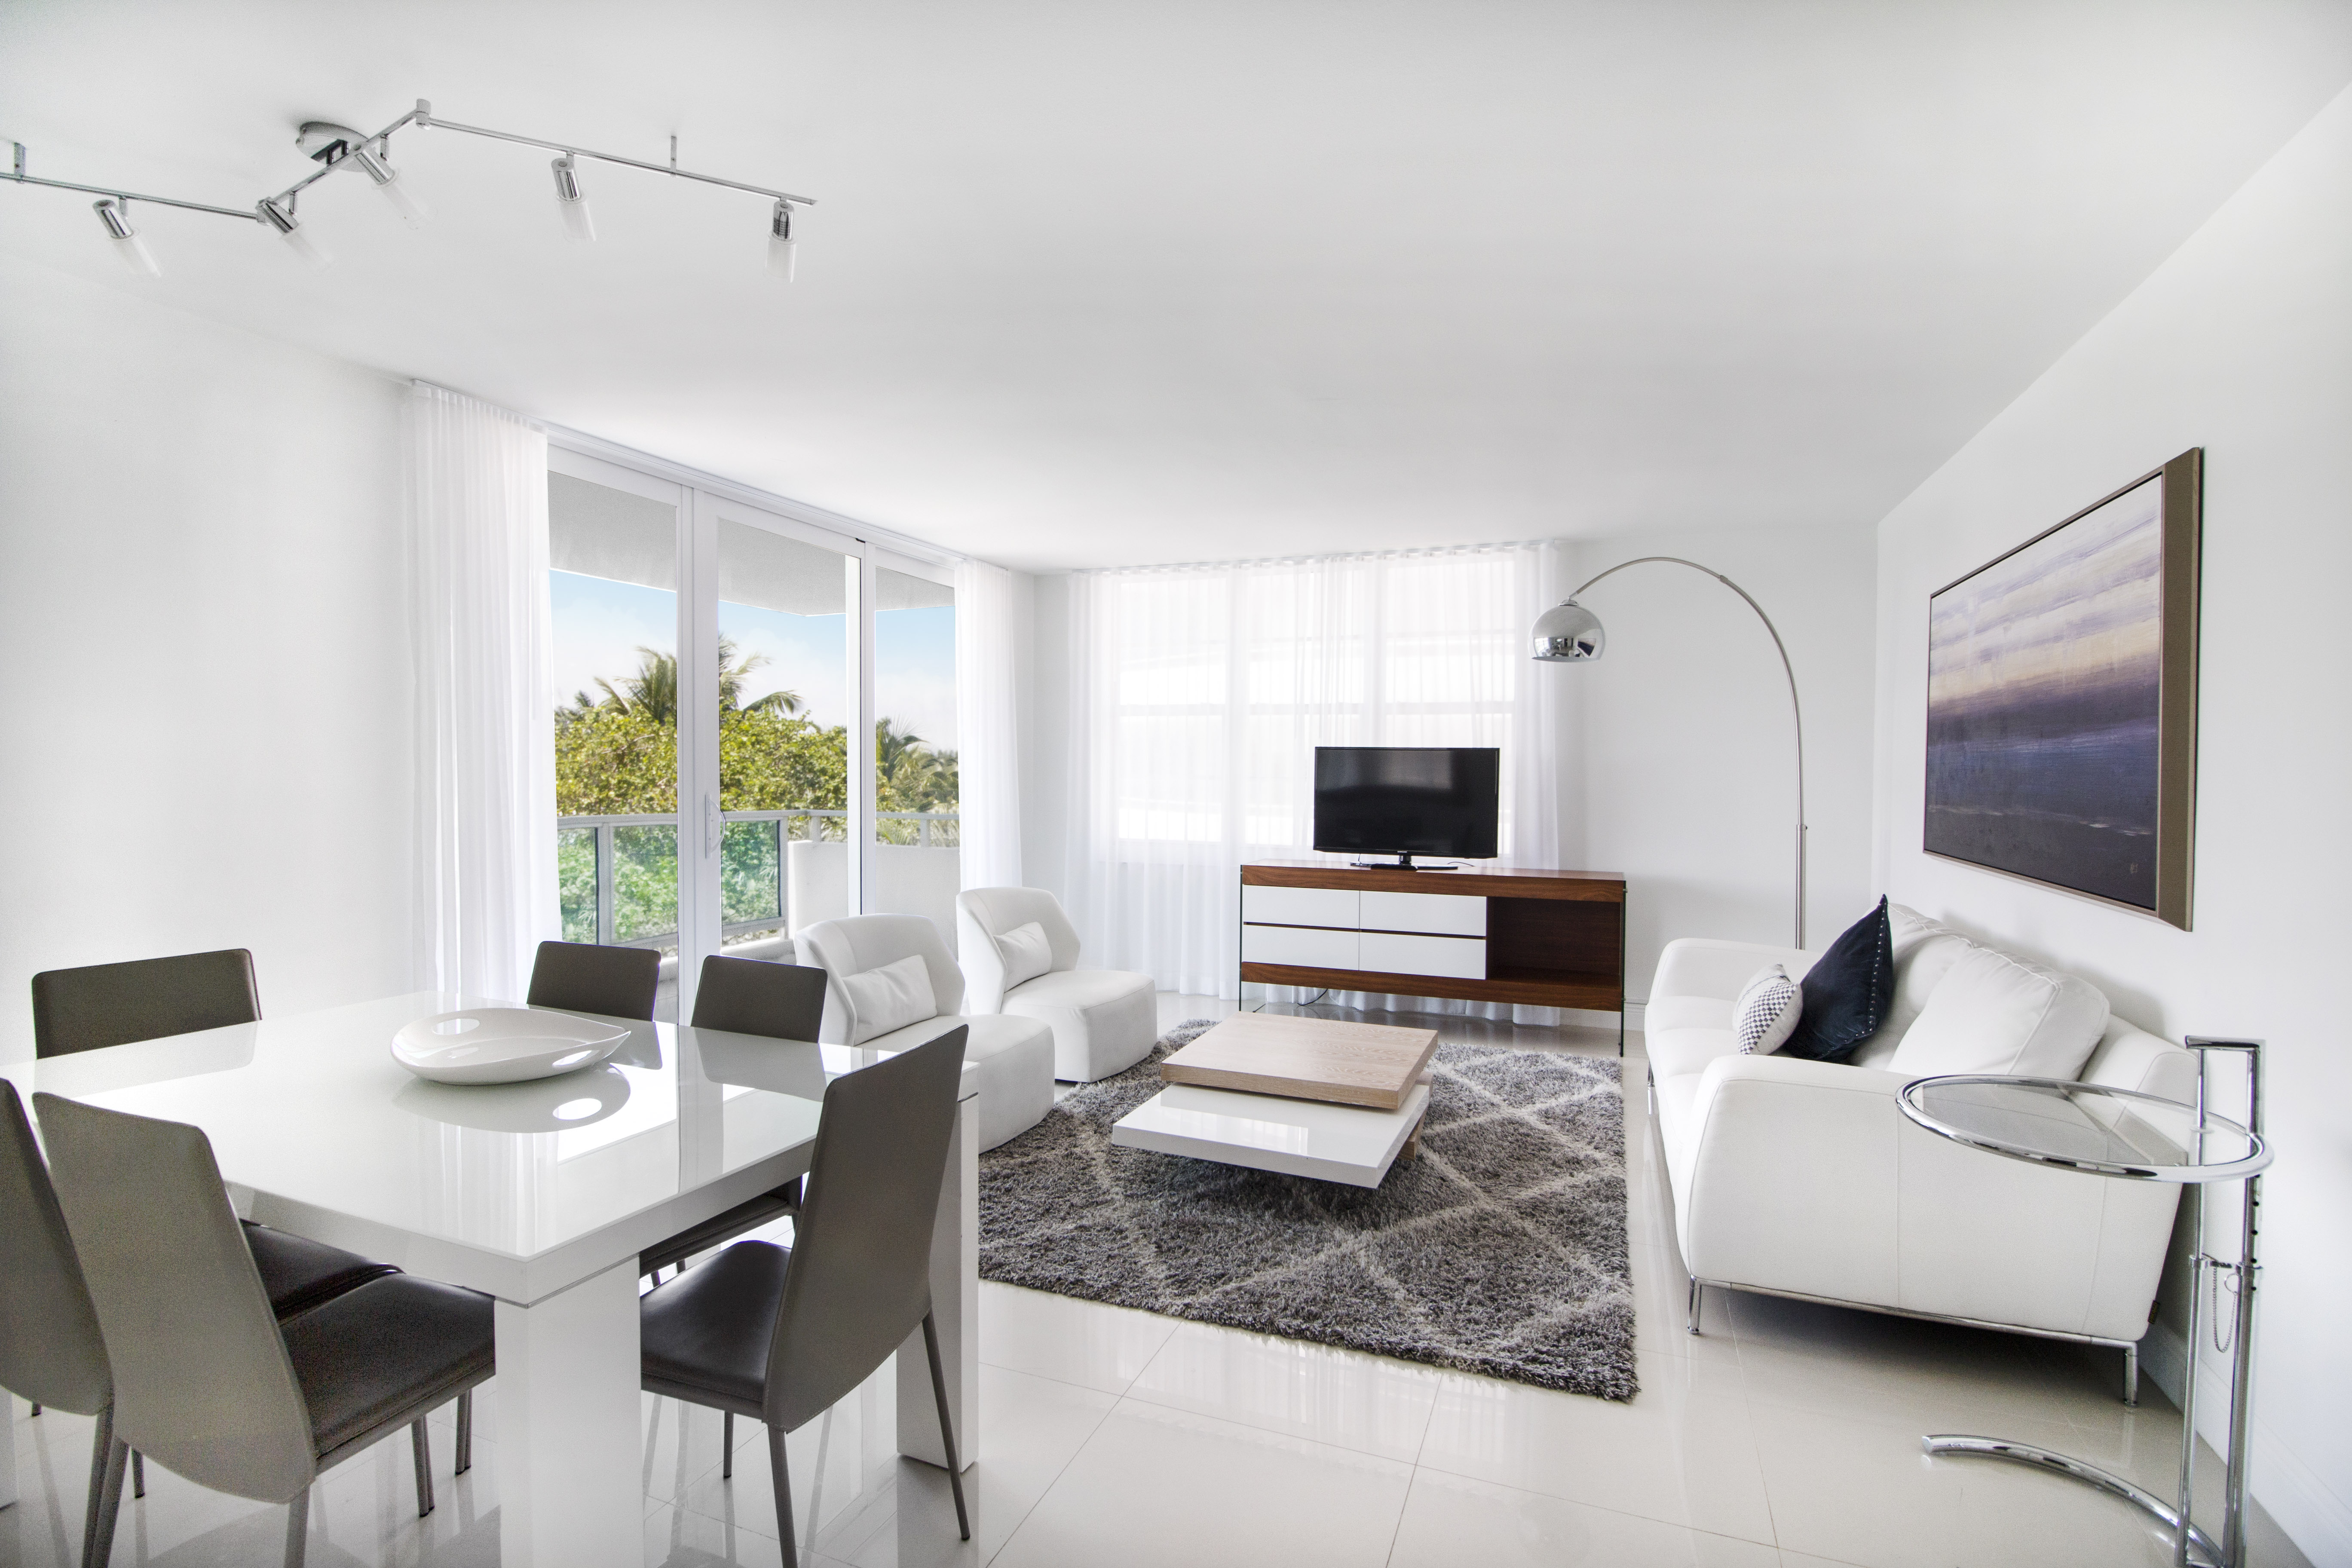 Living room of Master 2 bedrooms suite at Seacoast Suites